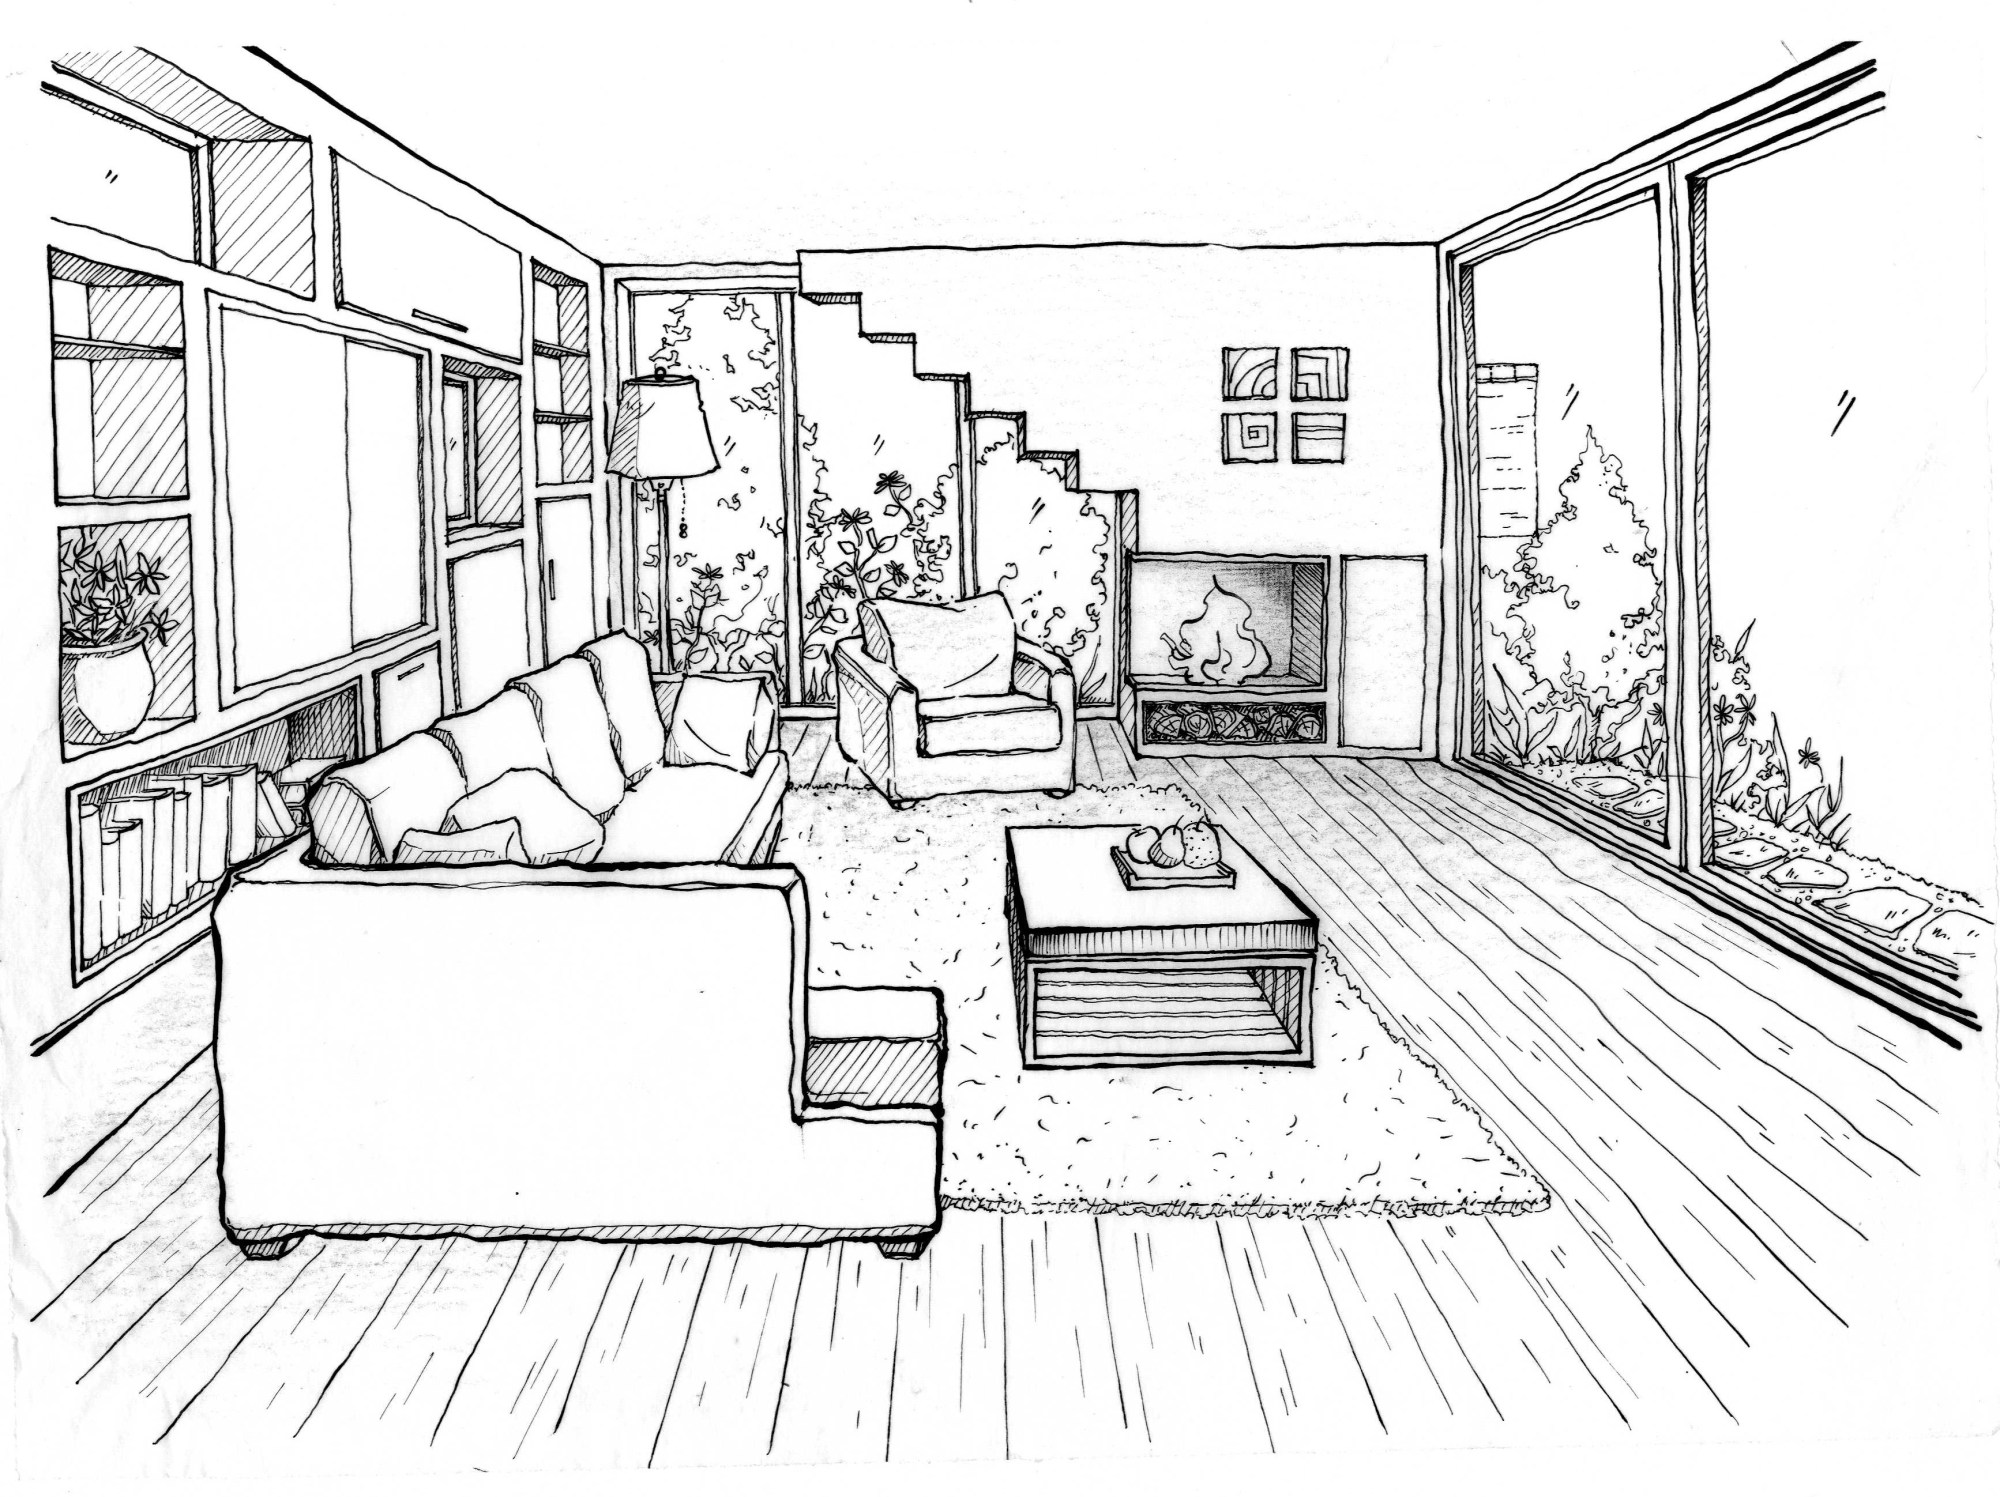 hight resolution of 3468x2597 houses house drawing design clipart in simple